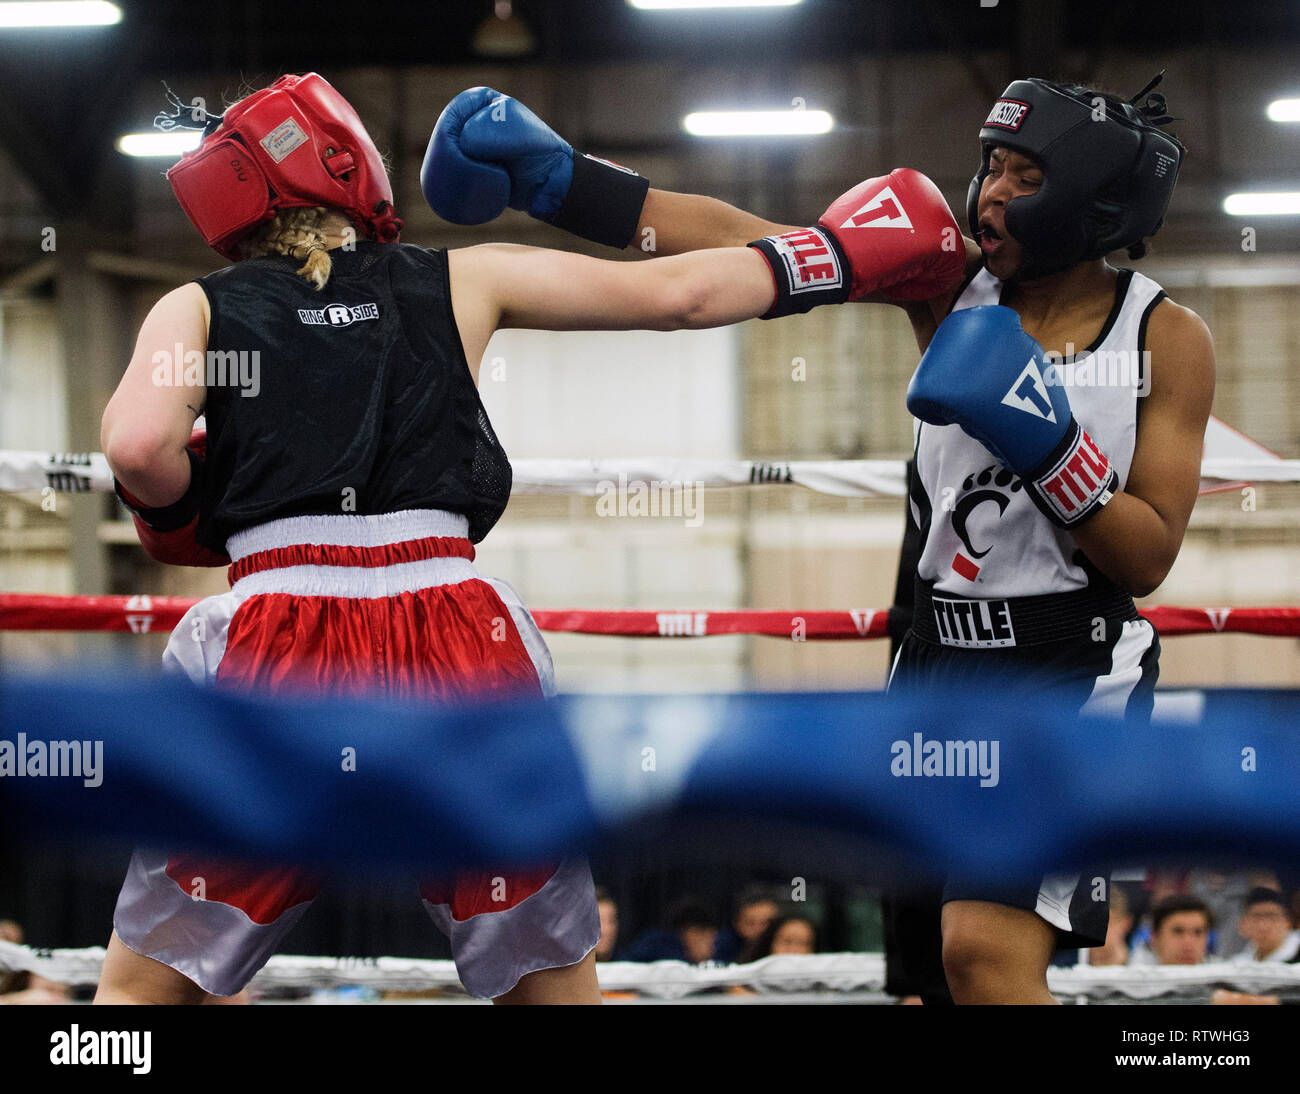 March 2, 2019: Cleopatria Steward of Cincinnati (right) and Kensley Dunagan of Ohio State (left) fight in the Amateur Boxing competition at the Arnold Sports Festival in Columbus, Ohio, USA. Brent Clark/Alamy Live News Stock Photo